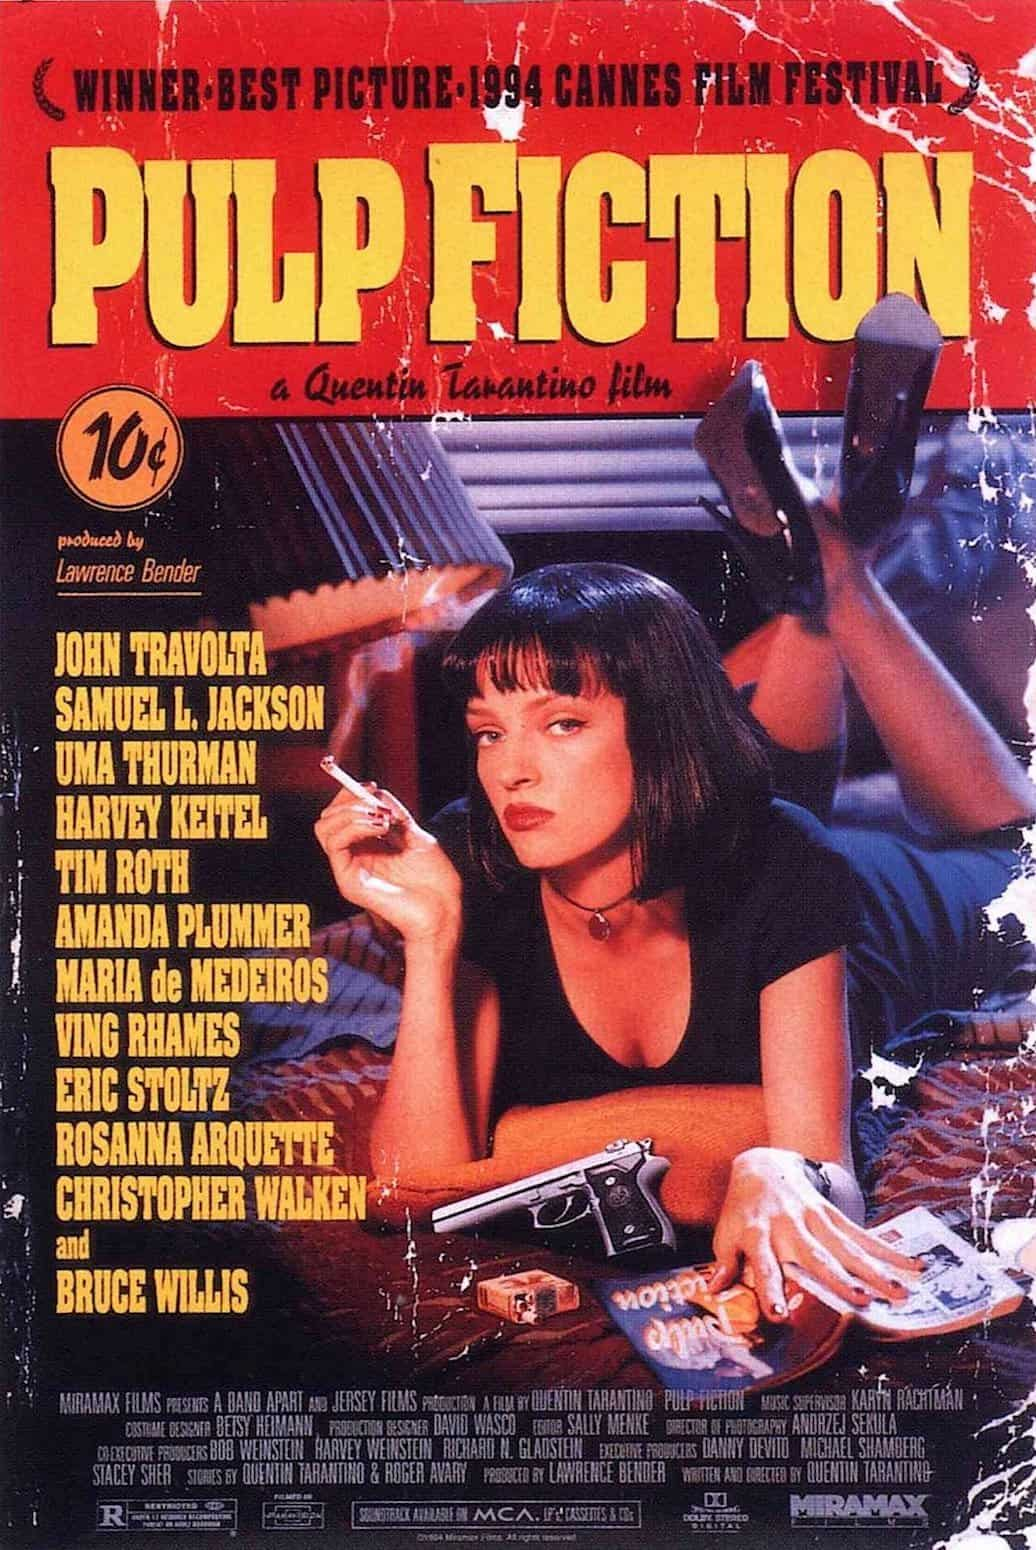 Screenplay Examples - Pulp Fiction Script - Movie Poster